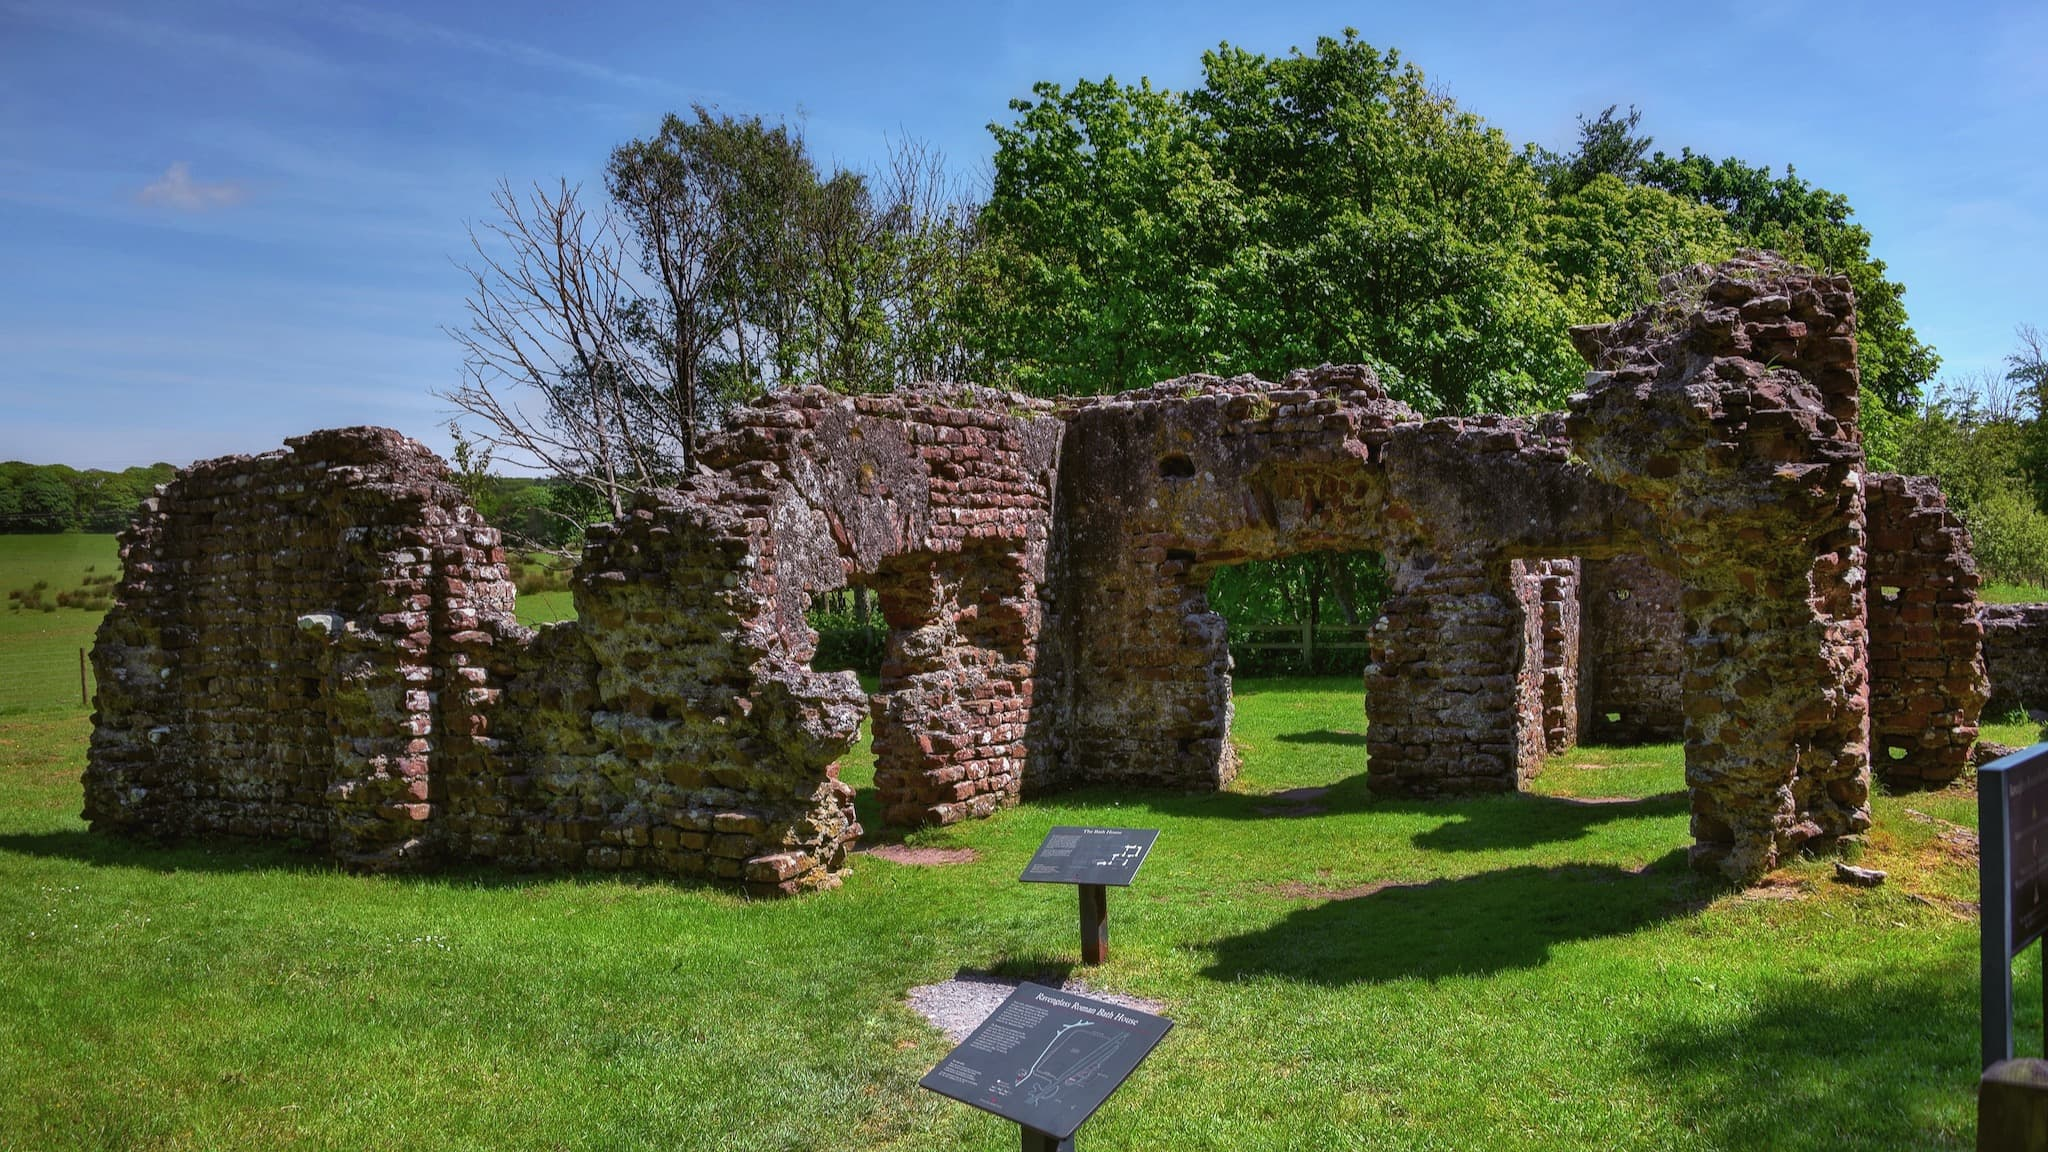 The Roman Bath House at Ravenglass, once the home of the Roman fort Glannoventa on the Cumbrian Coast. Photo by August Schwerdfeger, licensed CC-BY-4.0